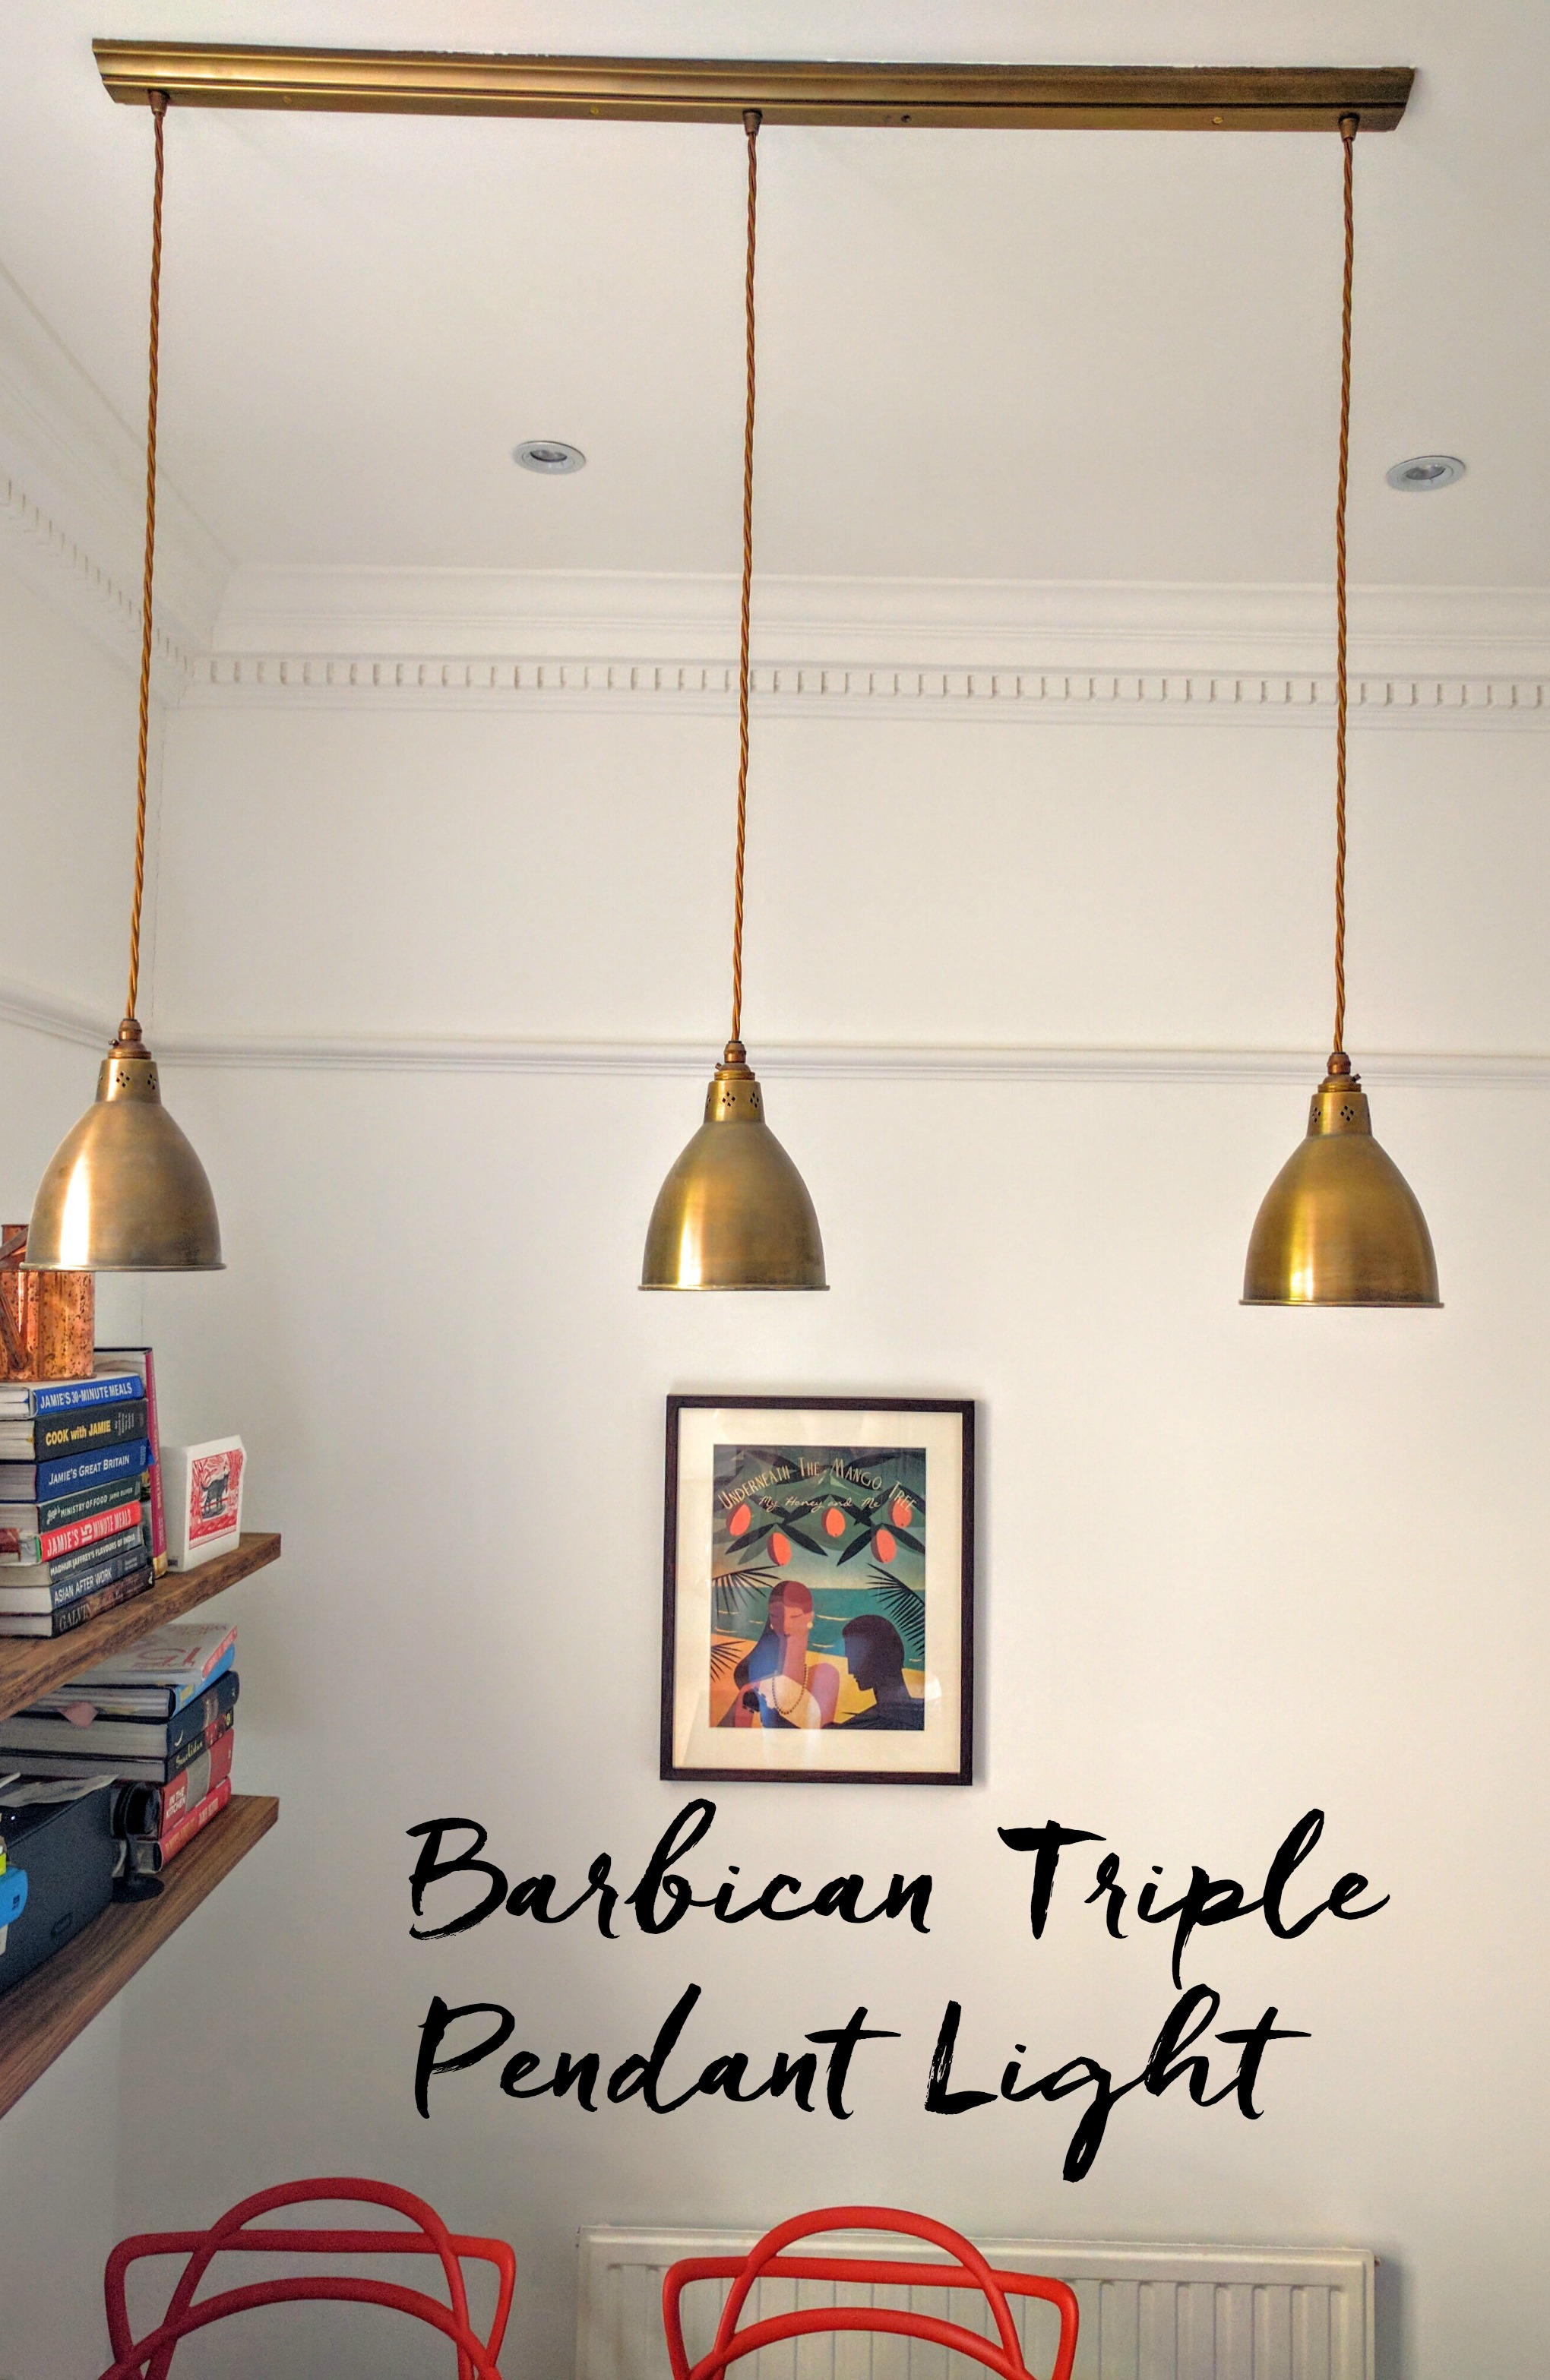 Barbican Triple Pendant Light (Jim Lawrence)